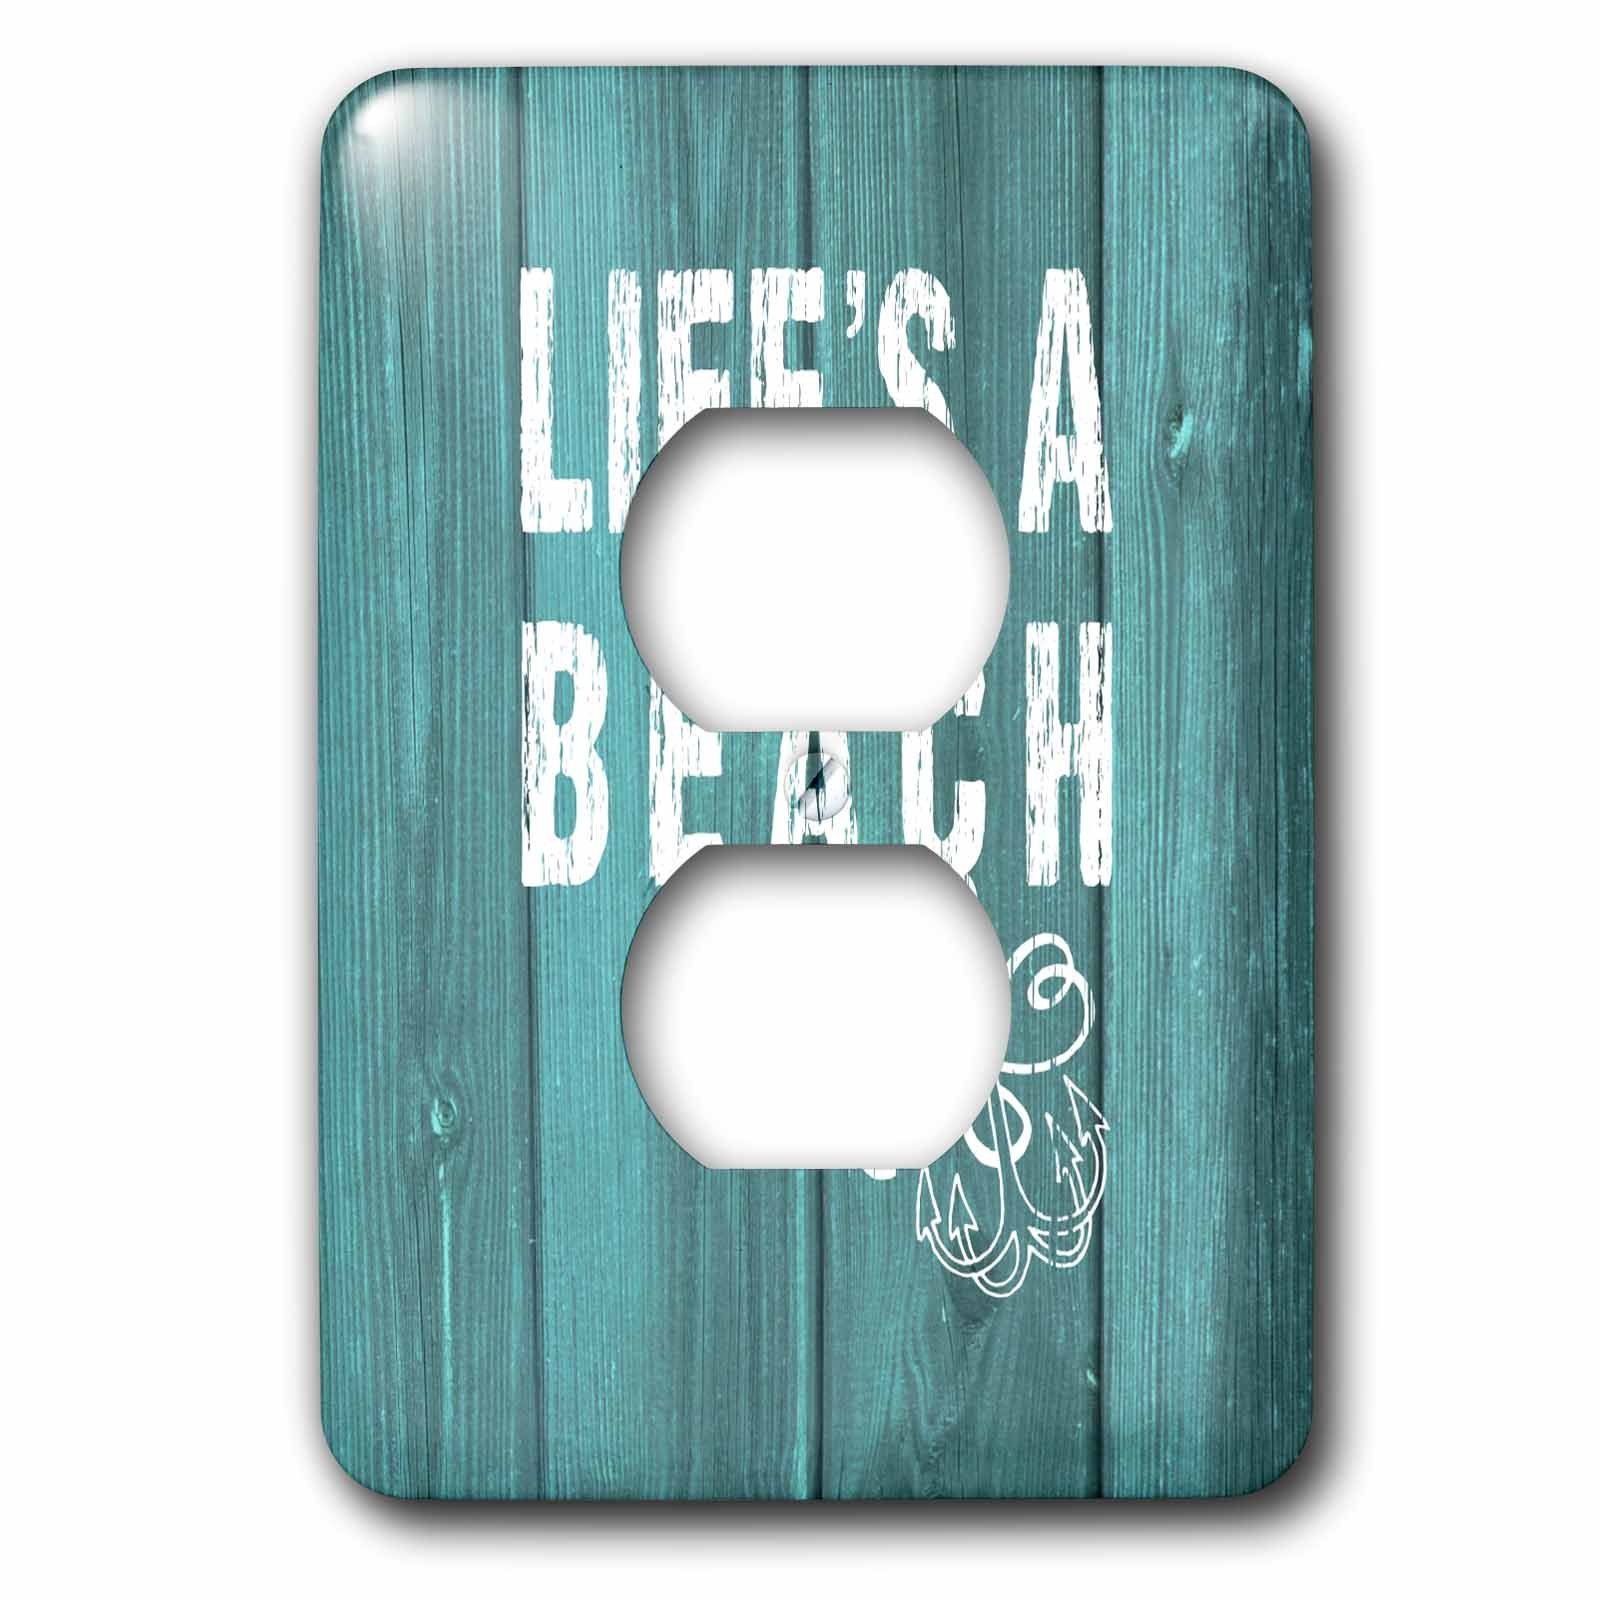 3dRose lsp_220419_6 Lifes a Beach Distressed Text on Teal Background-Not Real Wood 2 Plug Outlet Cover, White